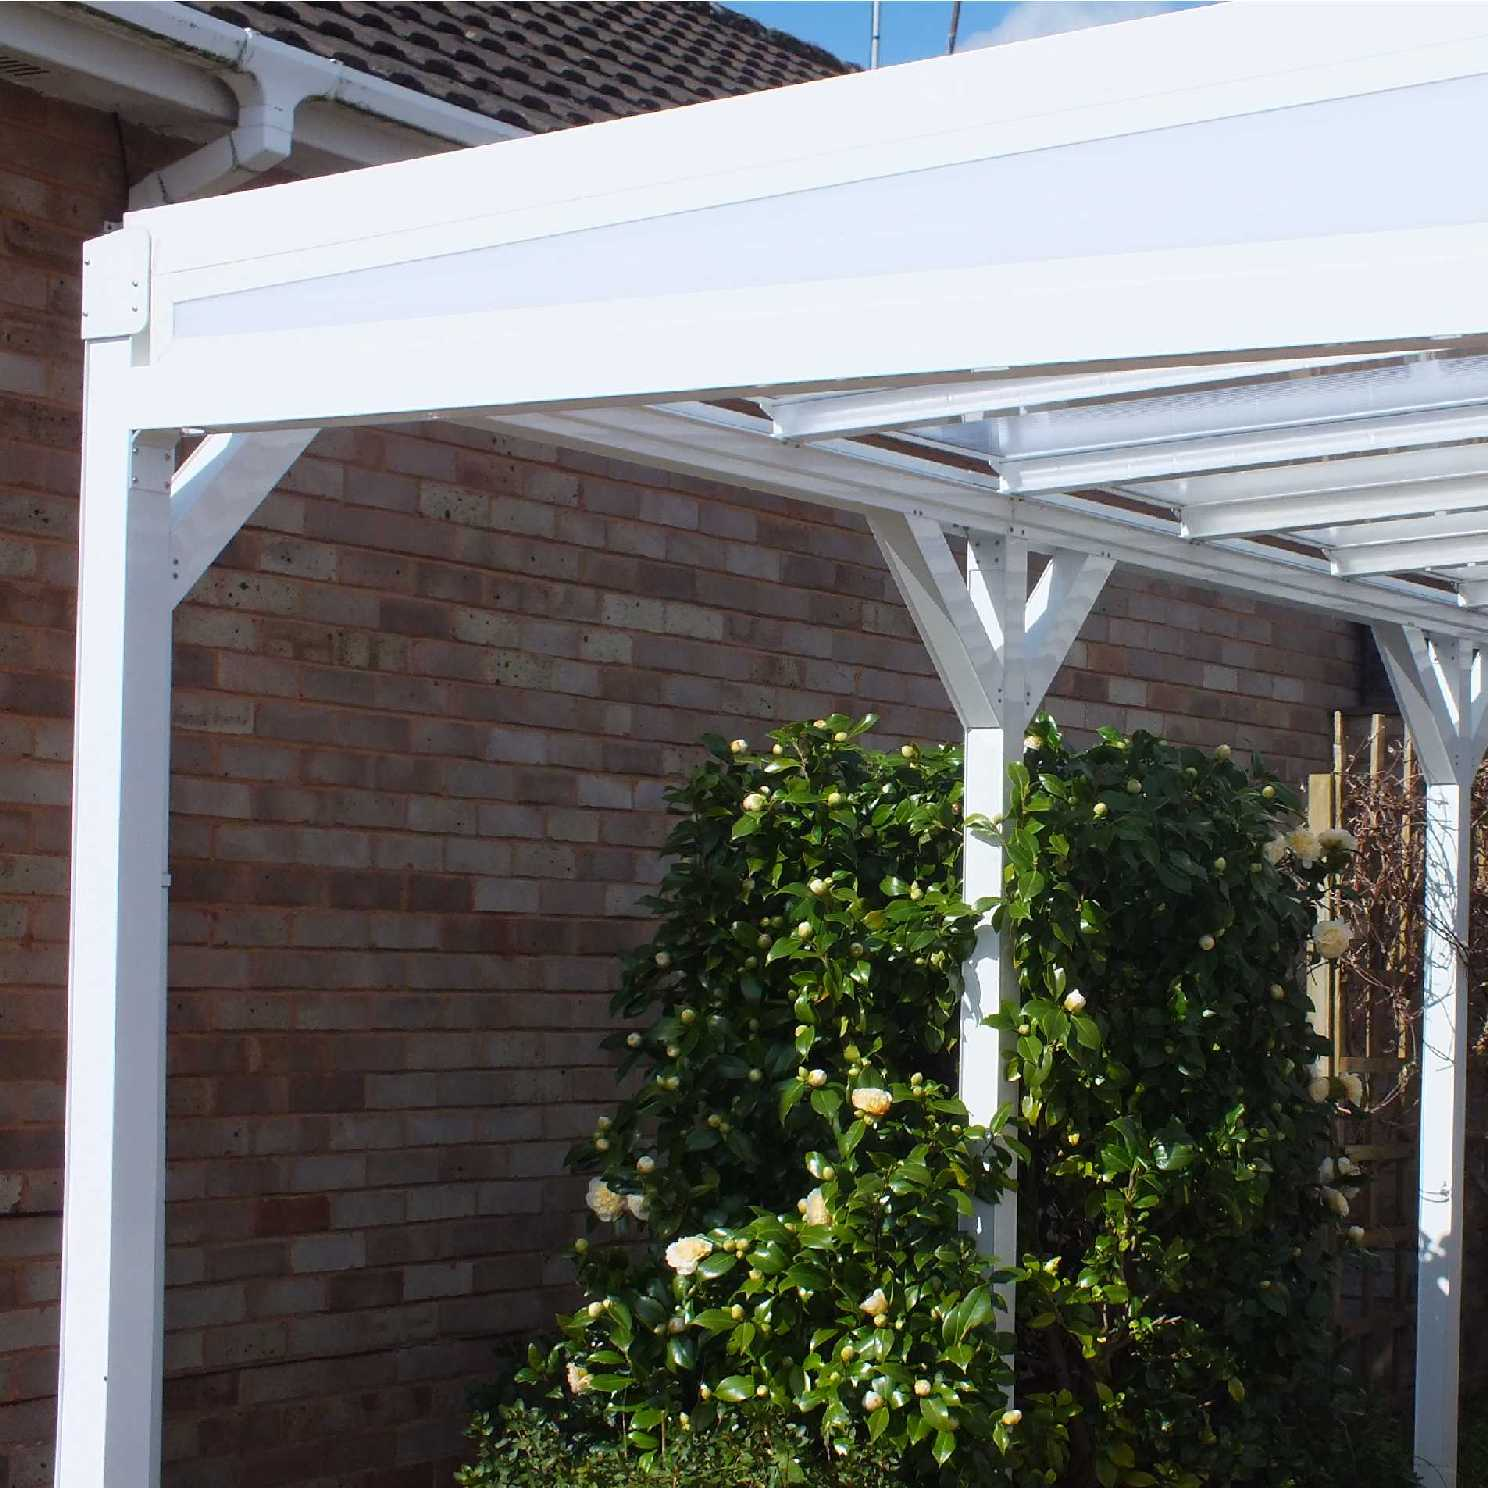 Omega Smart Lean-To Canopy with 16mm Polycarbonate Glazing - 11.6m (W) x 2.5m (P), (5) Supporting Posts from Omega Build